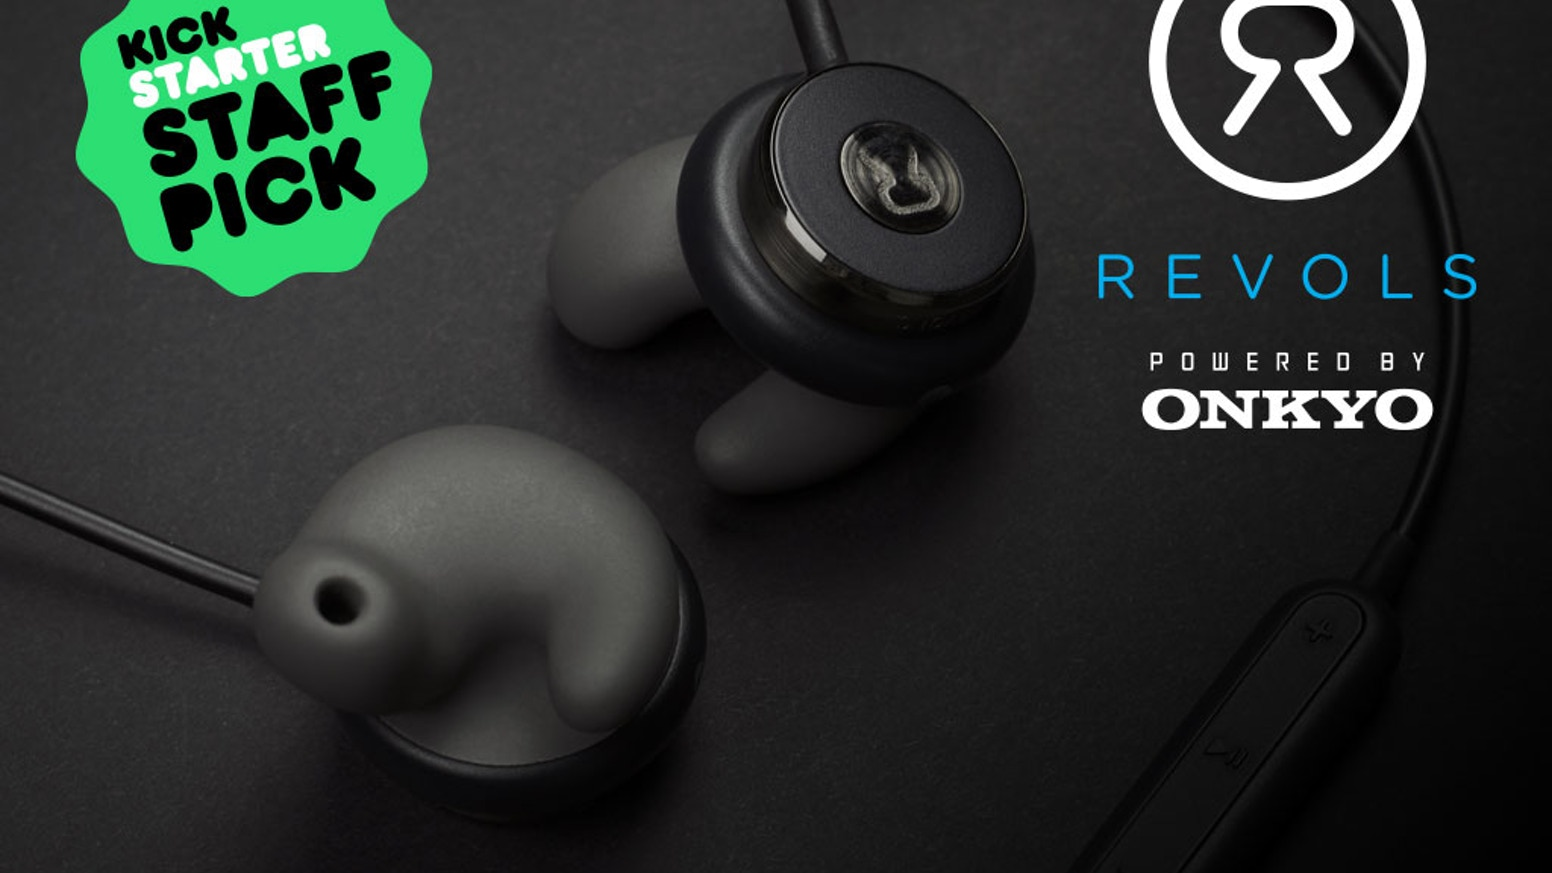 Canada's #1 crowdfunding campaign of all time! Bluetooth earphones with tips that mold to the unique shape of your ears in 60 seconds. Unparalleled fit, comfort, sound and features. Audio powered by Onkyo.